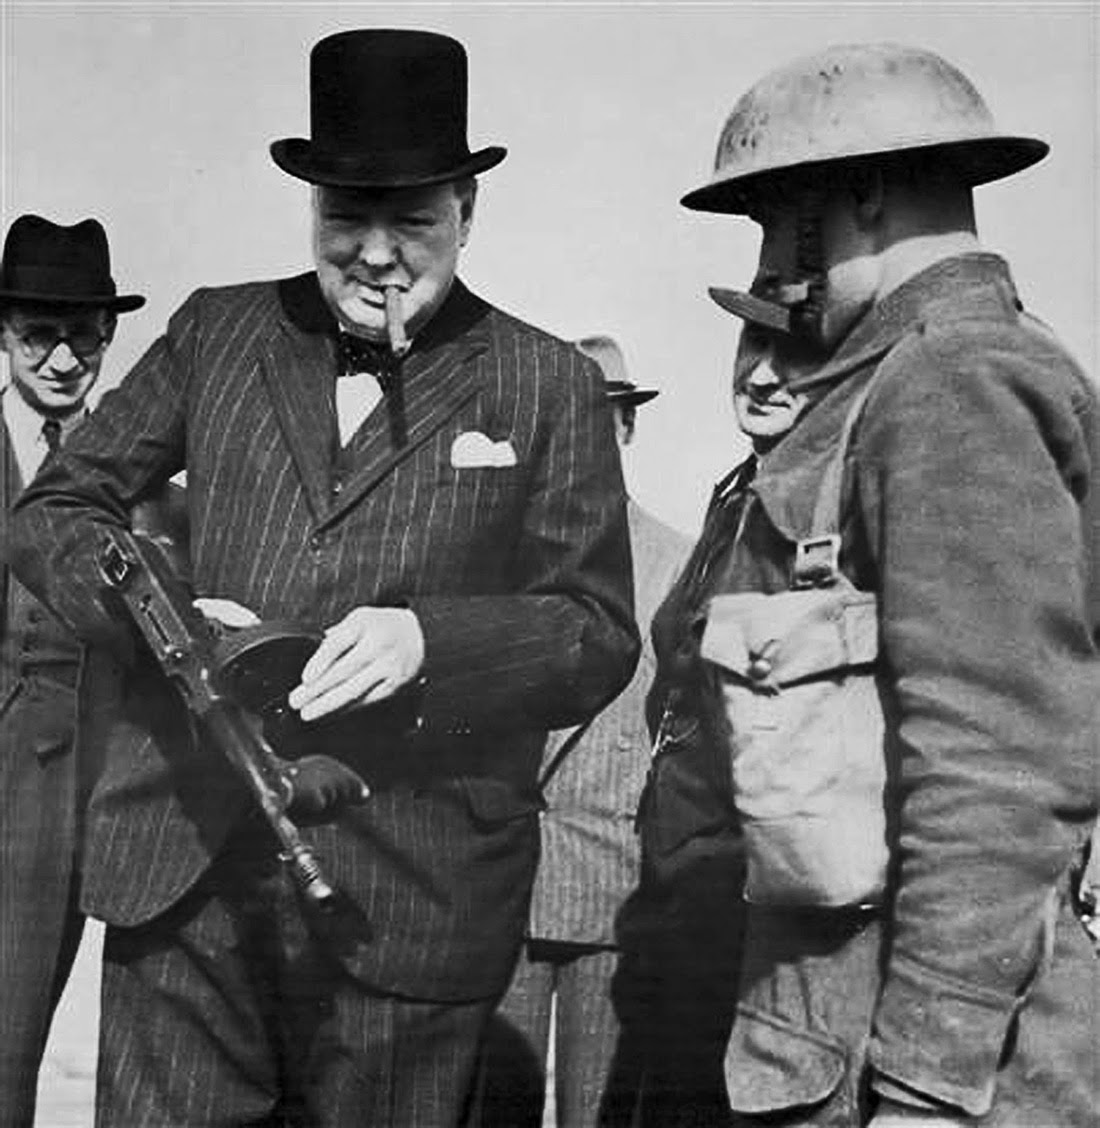 Winston Churchill with a Tommy Gun during an inspection near Harlepool 1940